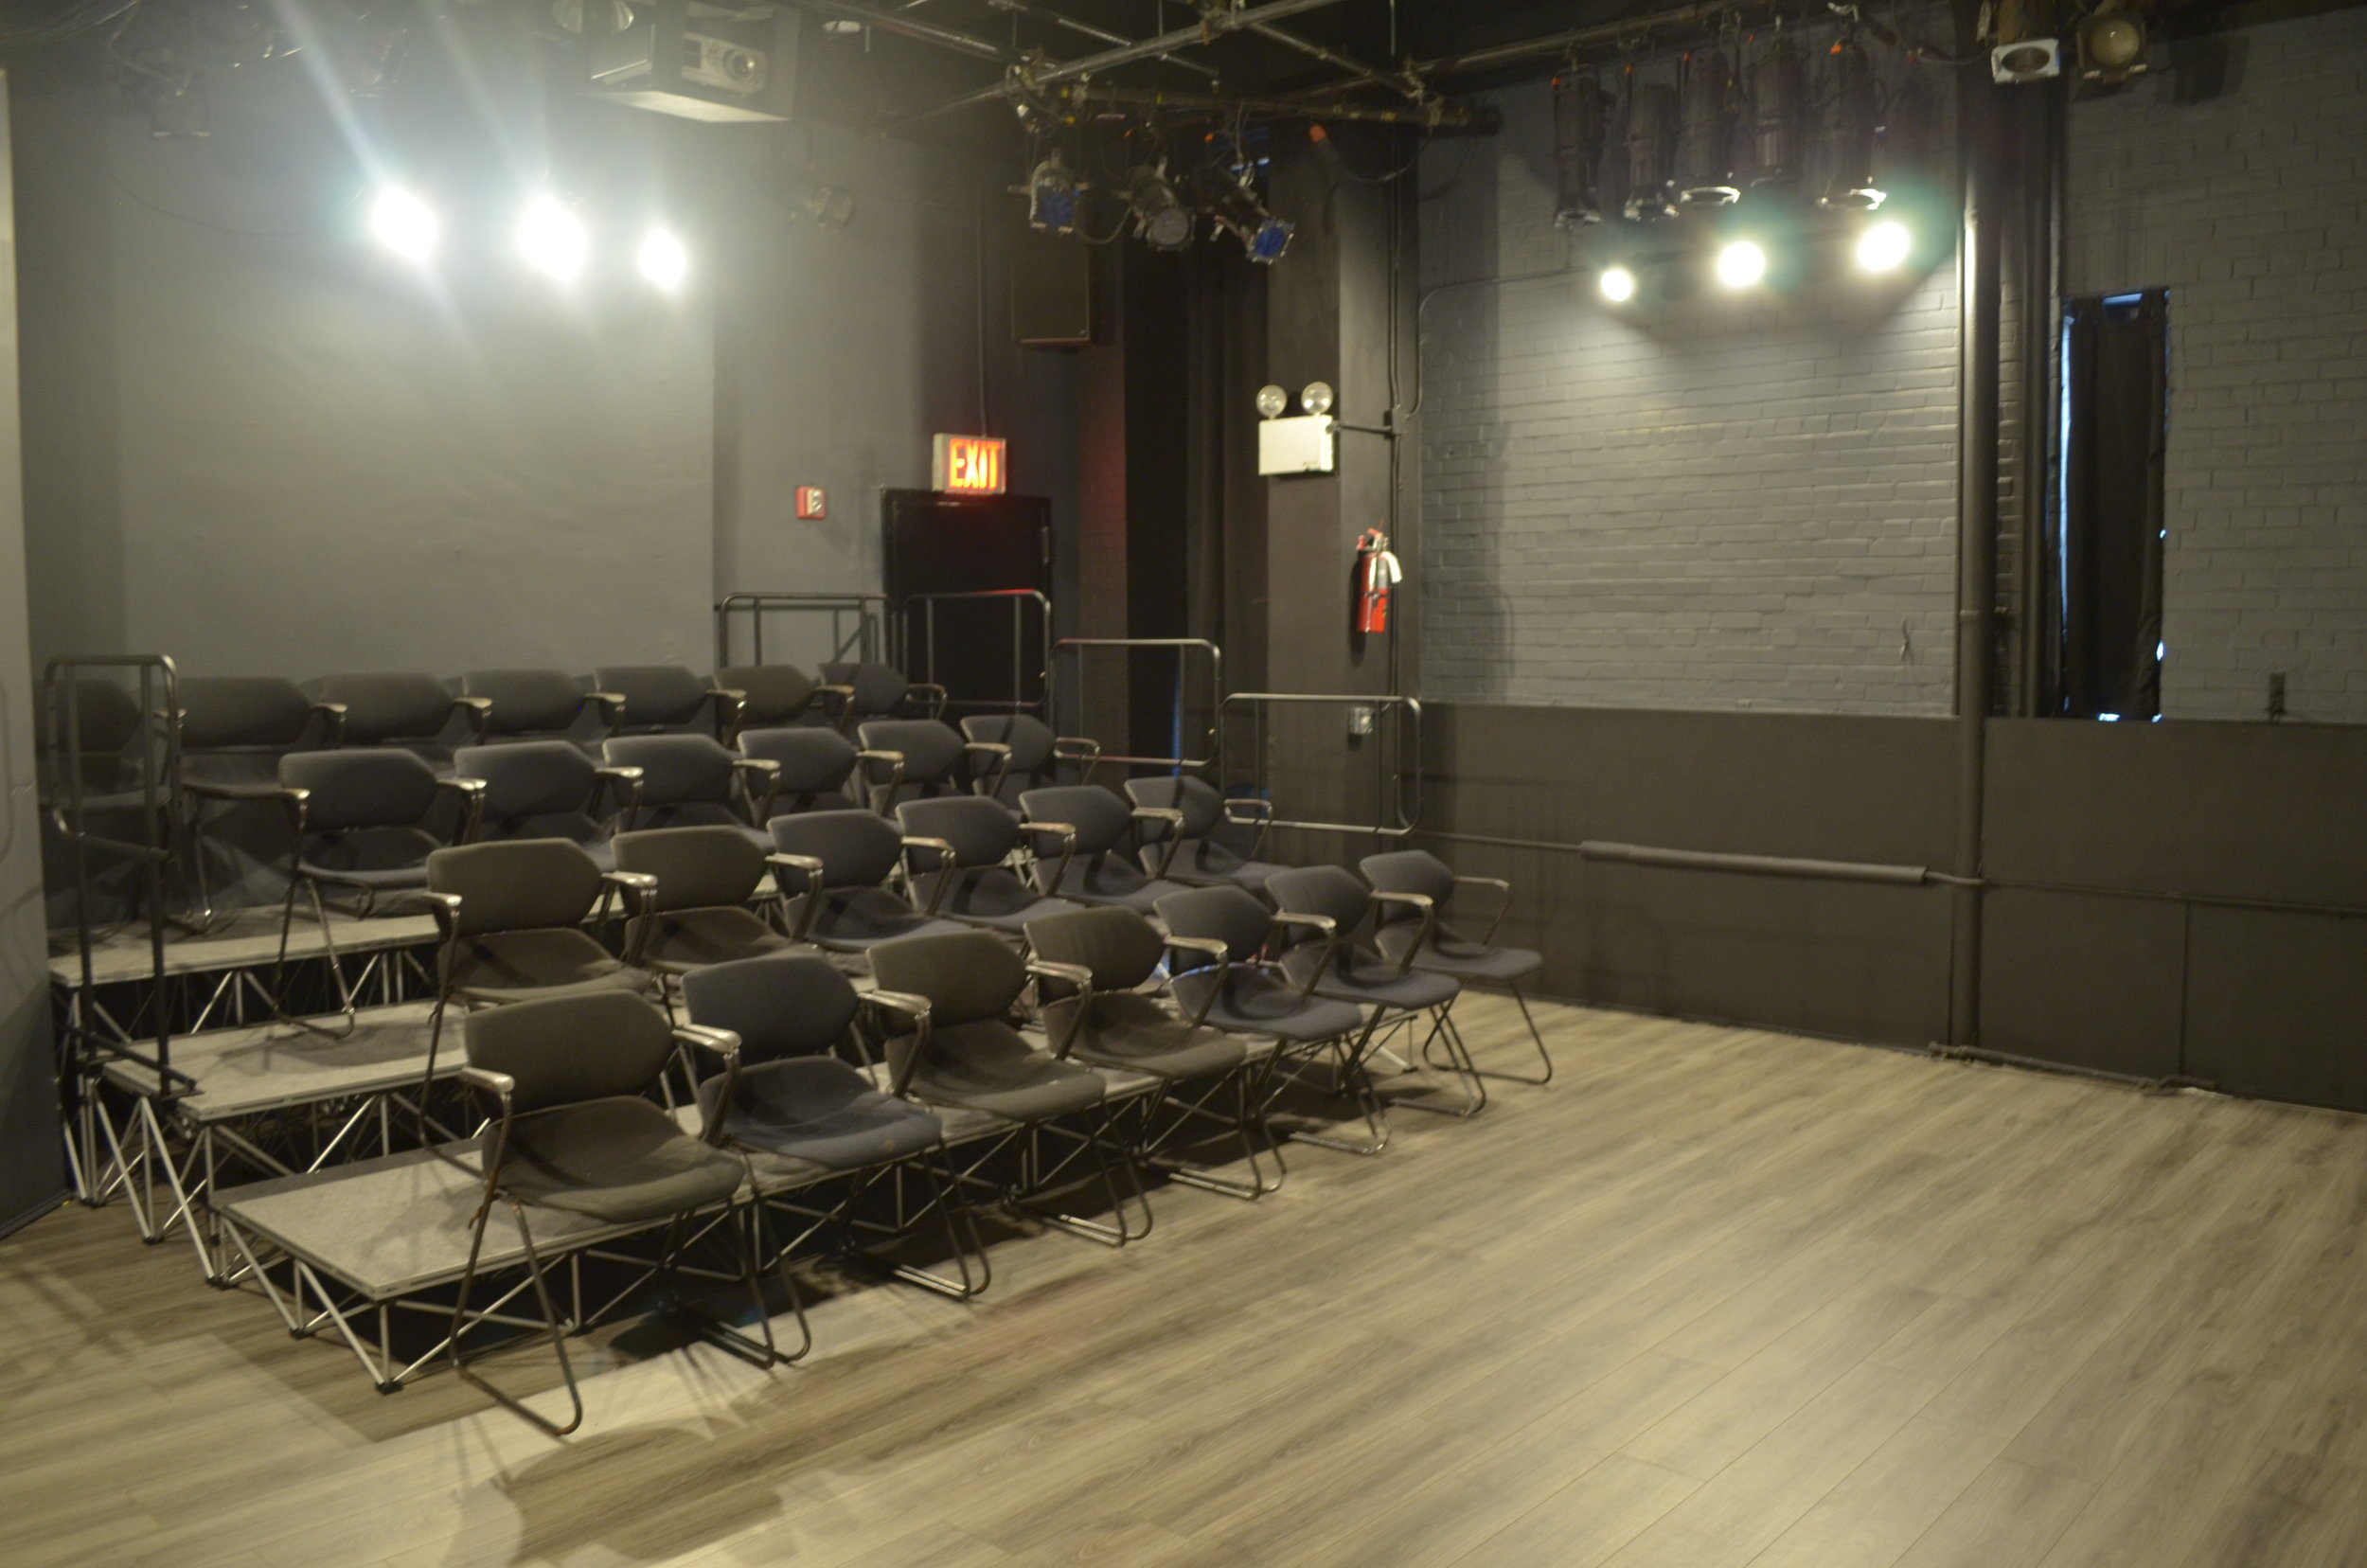 Studio Theatre - - Seating Capacity: 25-40 seats- Risers and chairs are all removable.Great for readings, projects in developments, intimate screenings and rehearsals. Across the street from ARTNY, Ripley Grier, in the Theatre Building with the Tank and Barrow Group Theatre. Removable risers and seating up to 40 patrons. Rehearsal cubes and stands available. Projector and screen on site. A great affordable space for works in development, private screenings, staged readings, showcase work to investors, and develop new projects.ADA Accessible